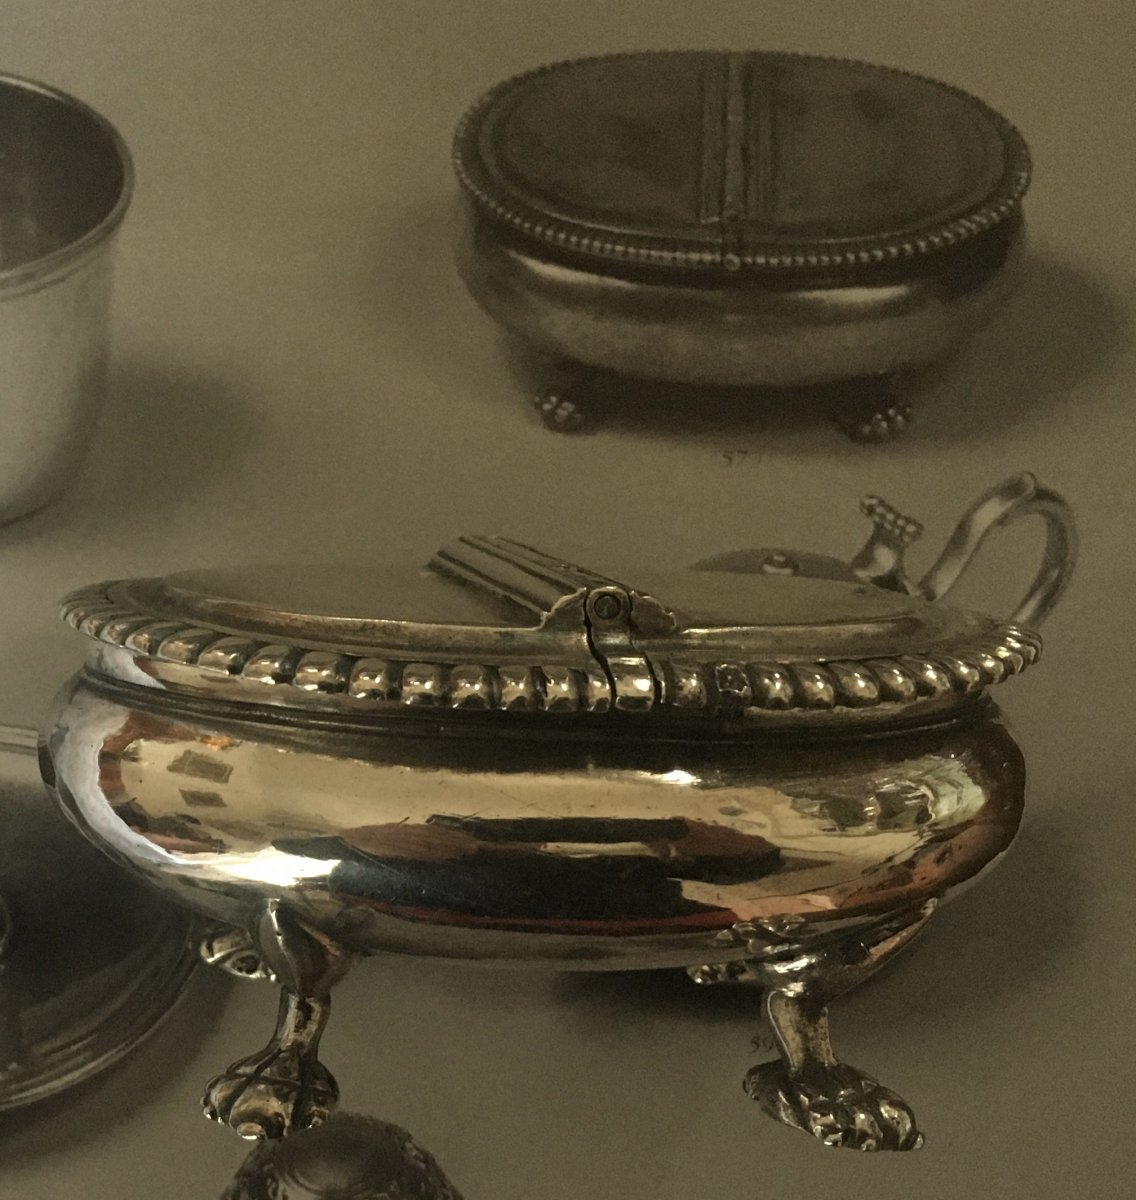 Box With Spices, Silver, XVIII